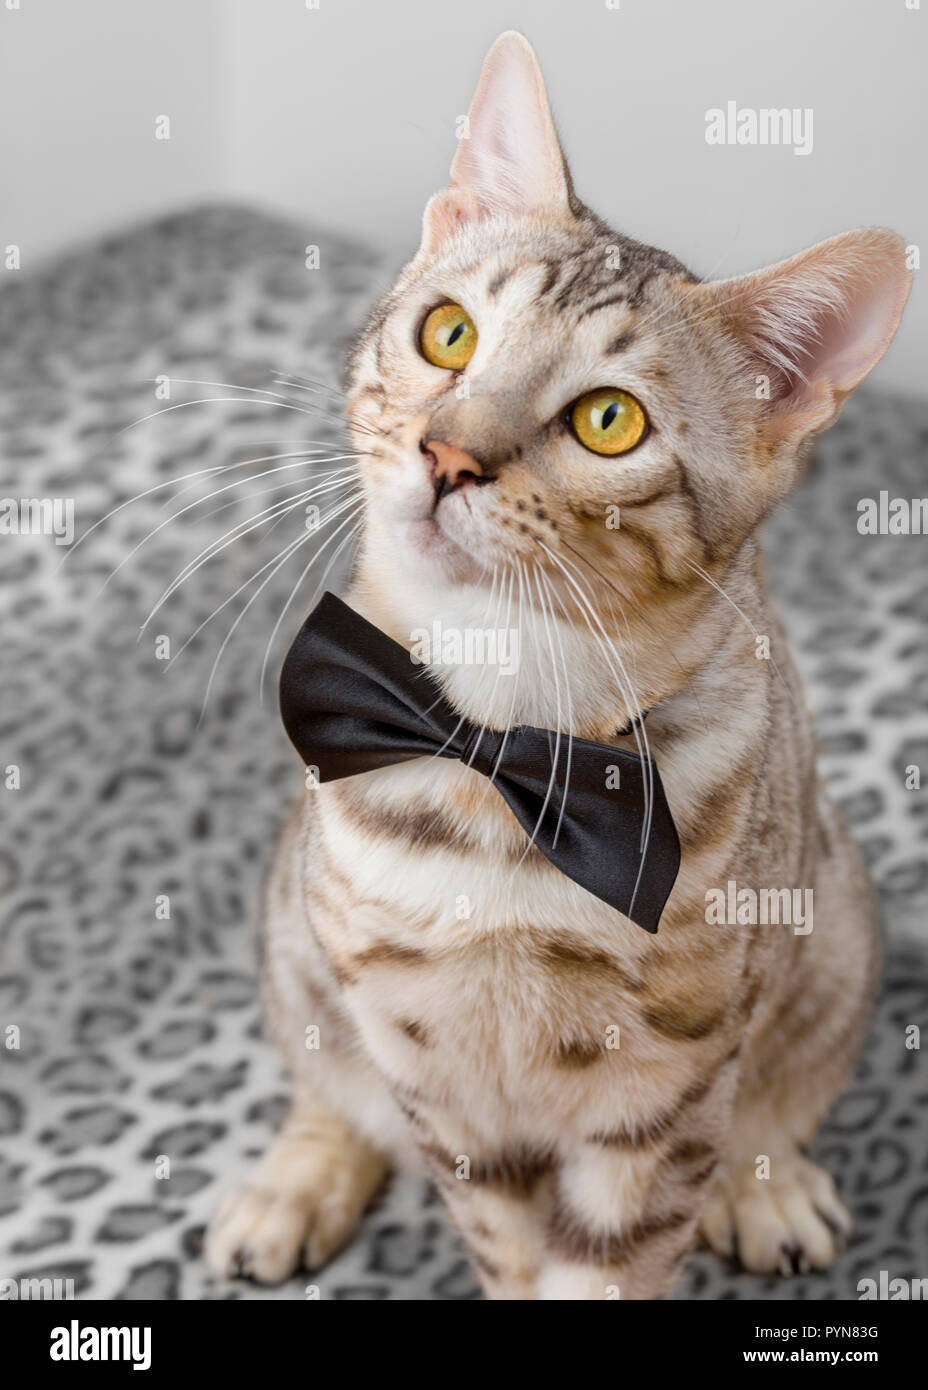 Cute young male Bengal cat kitten wearing bow tie looking up - Stock Image